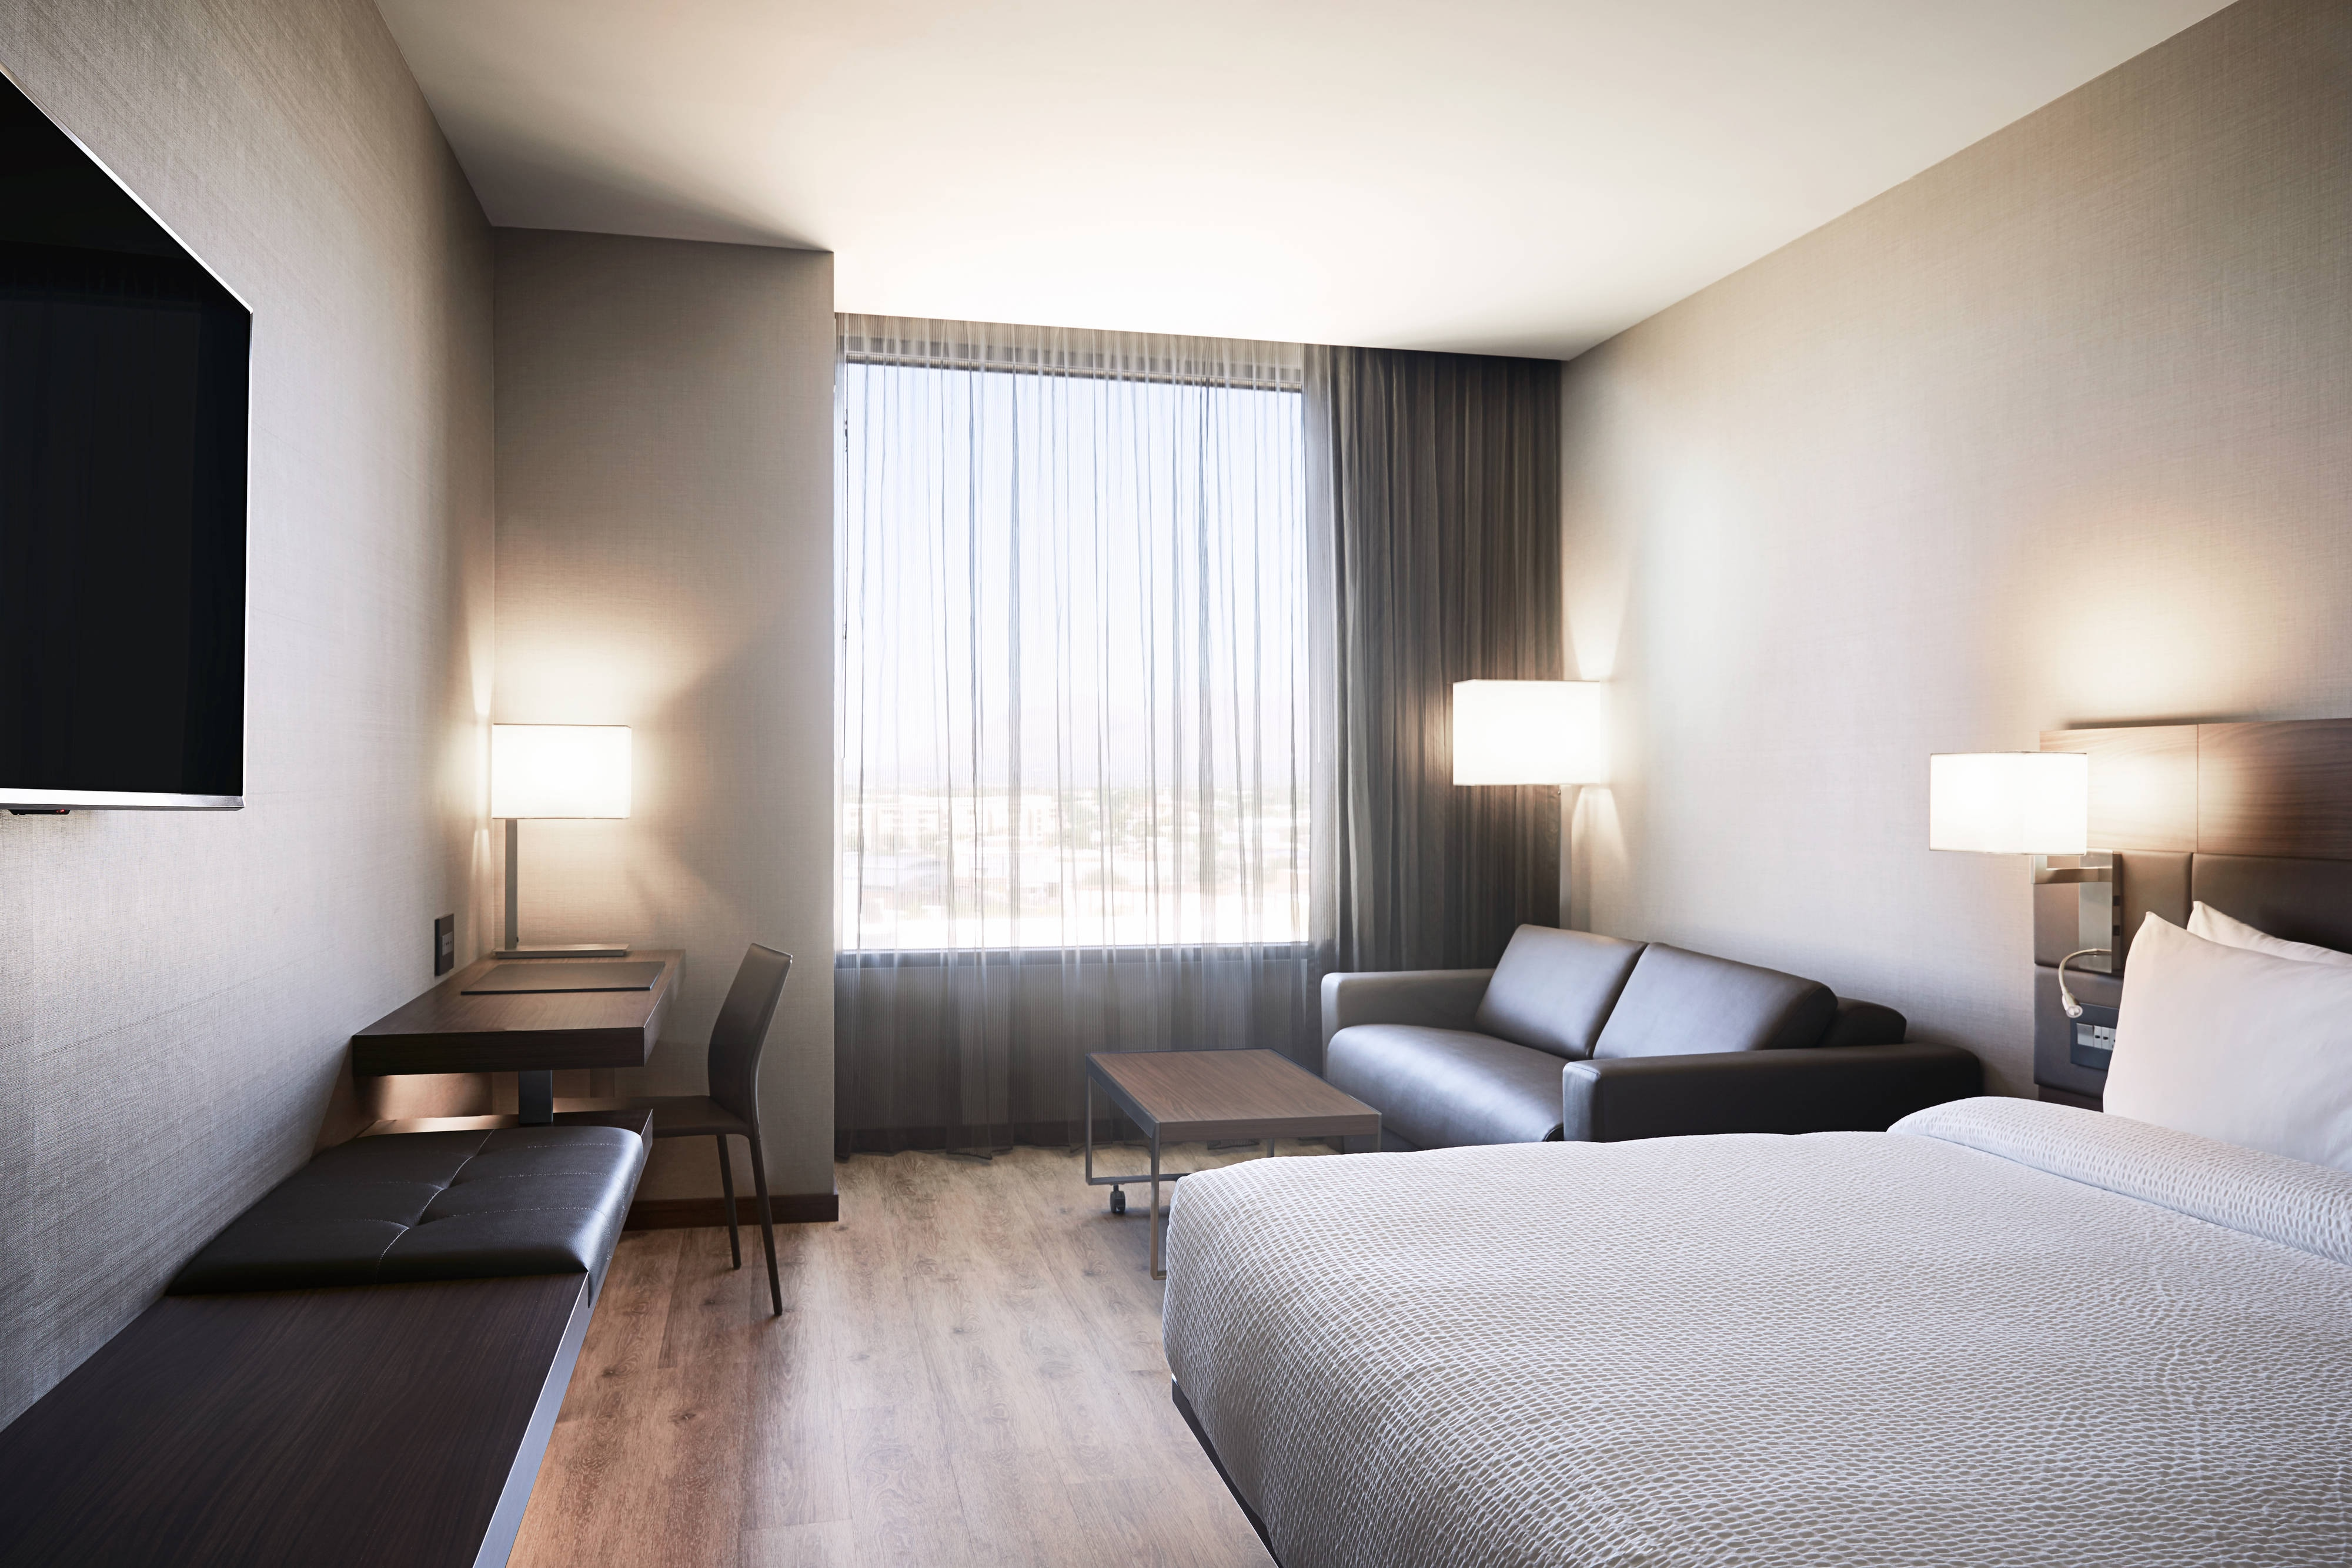 AC Hotel Tucson Downtown hotel amenities | Hotel room highlights